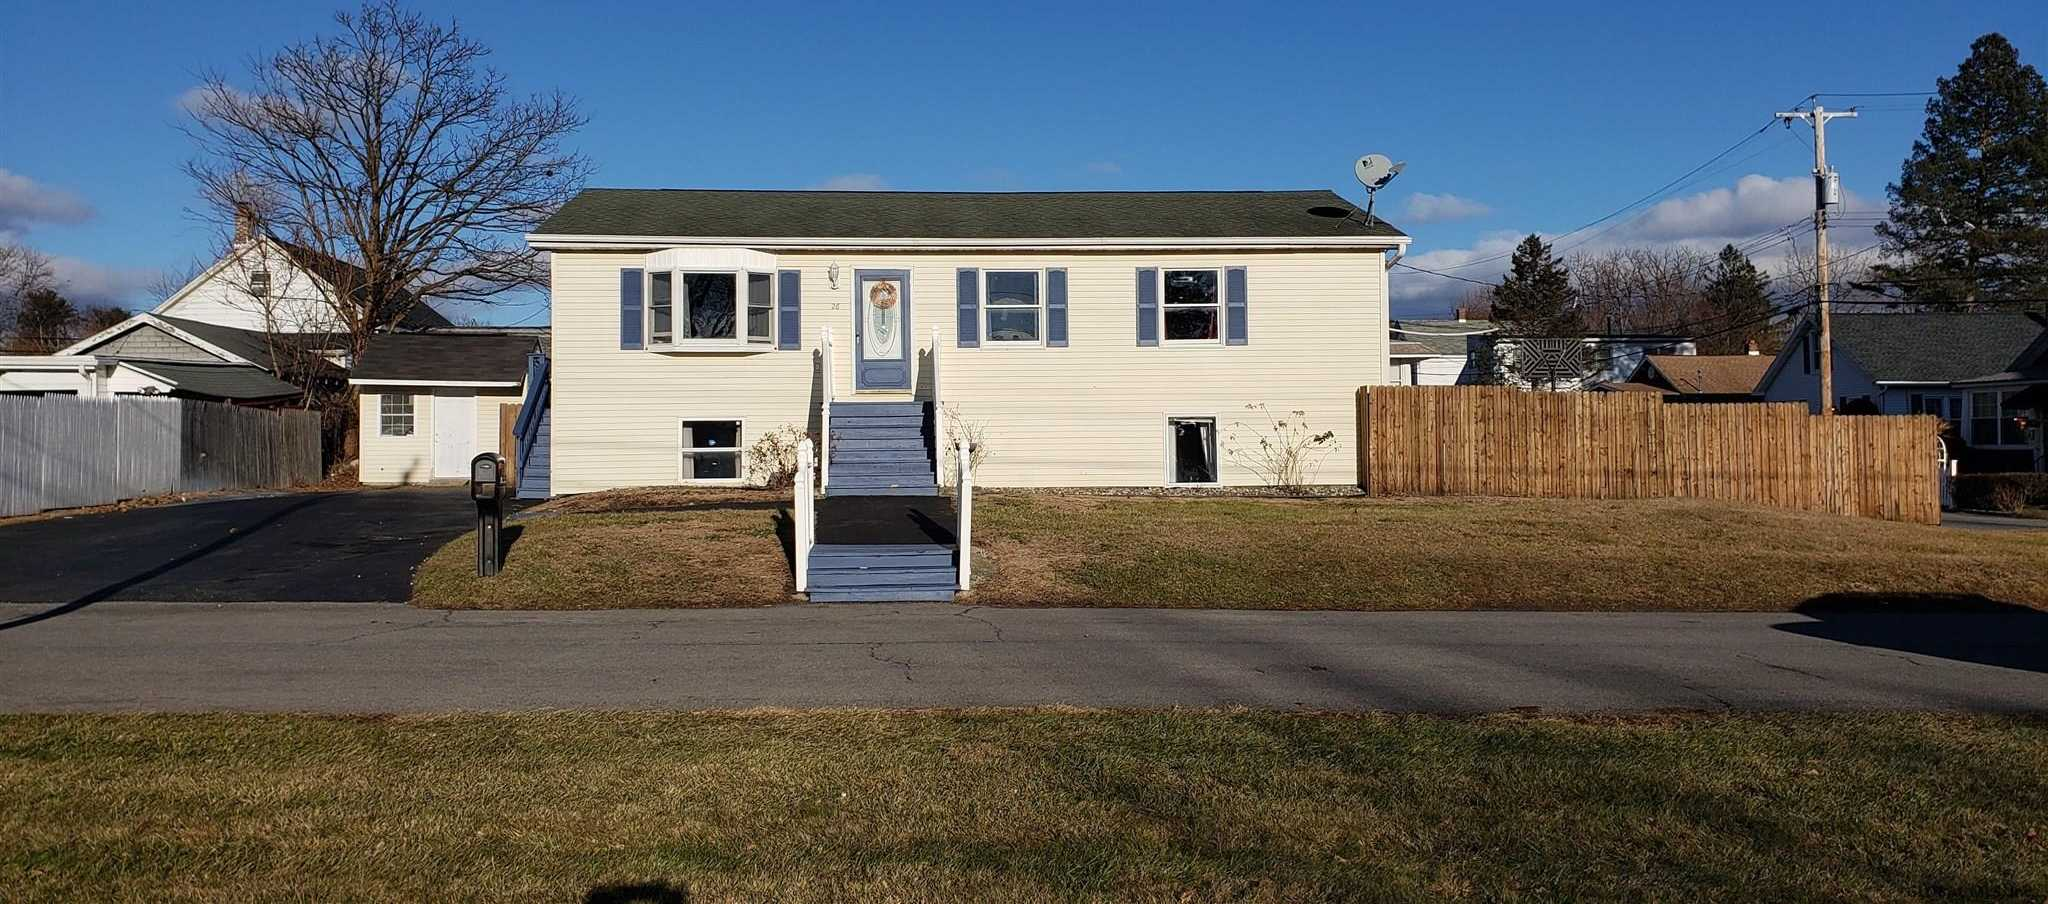 $235,000 - 5Br/2Ba -  for Sale in Colonie